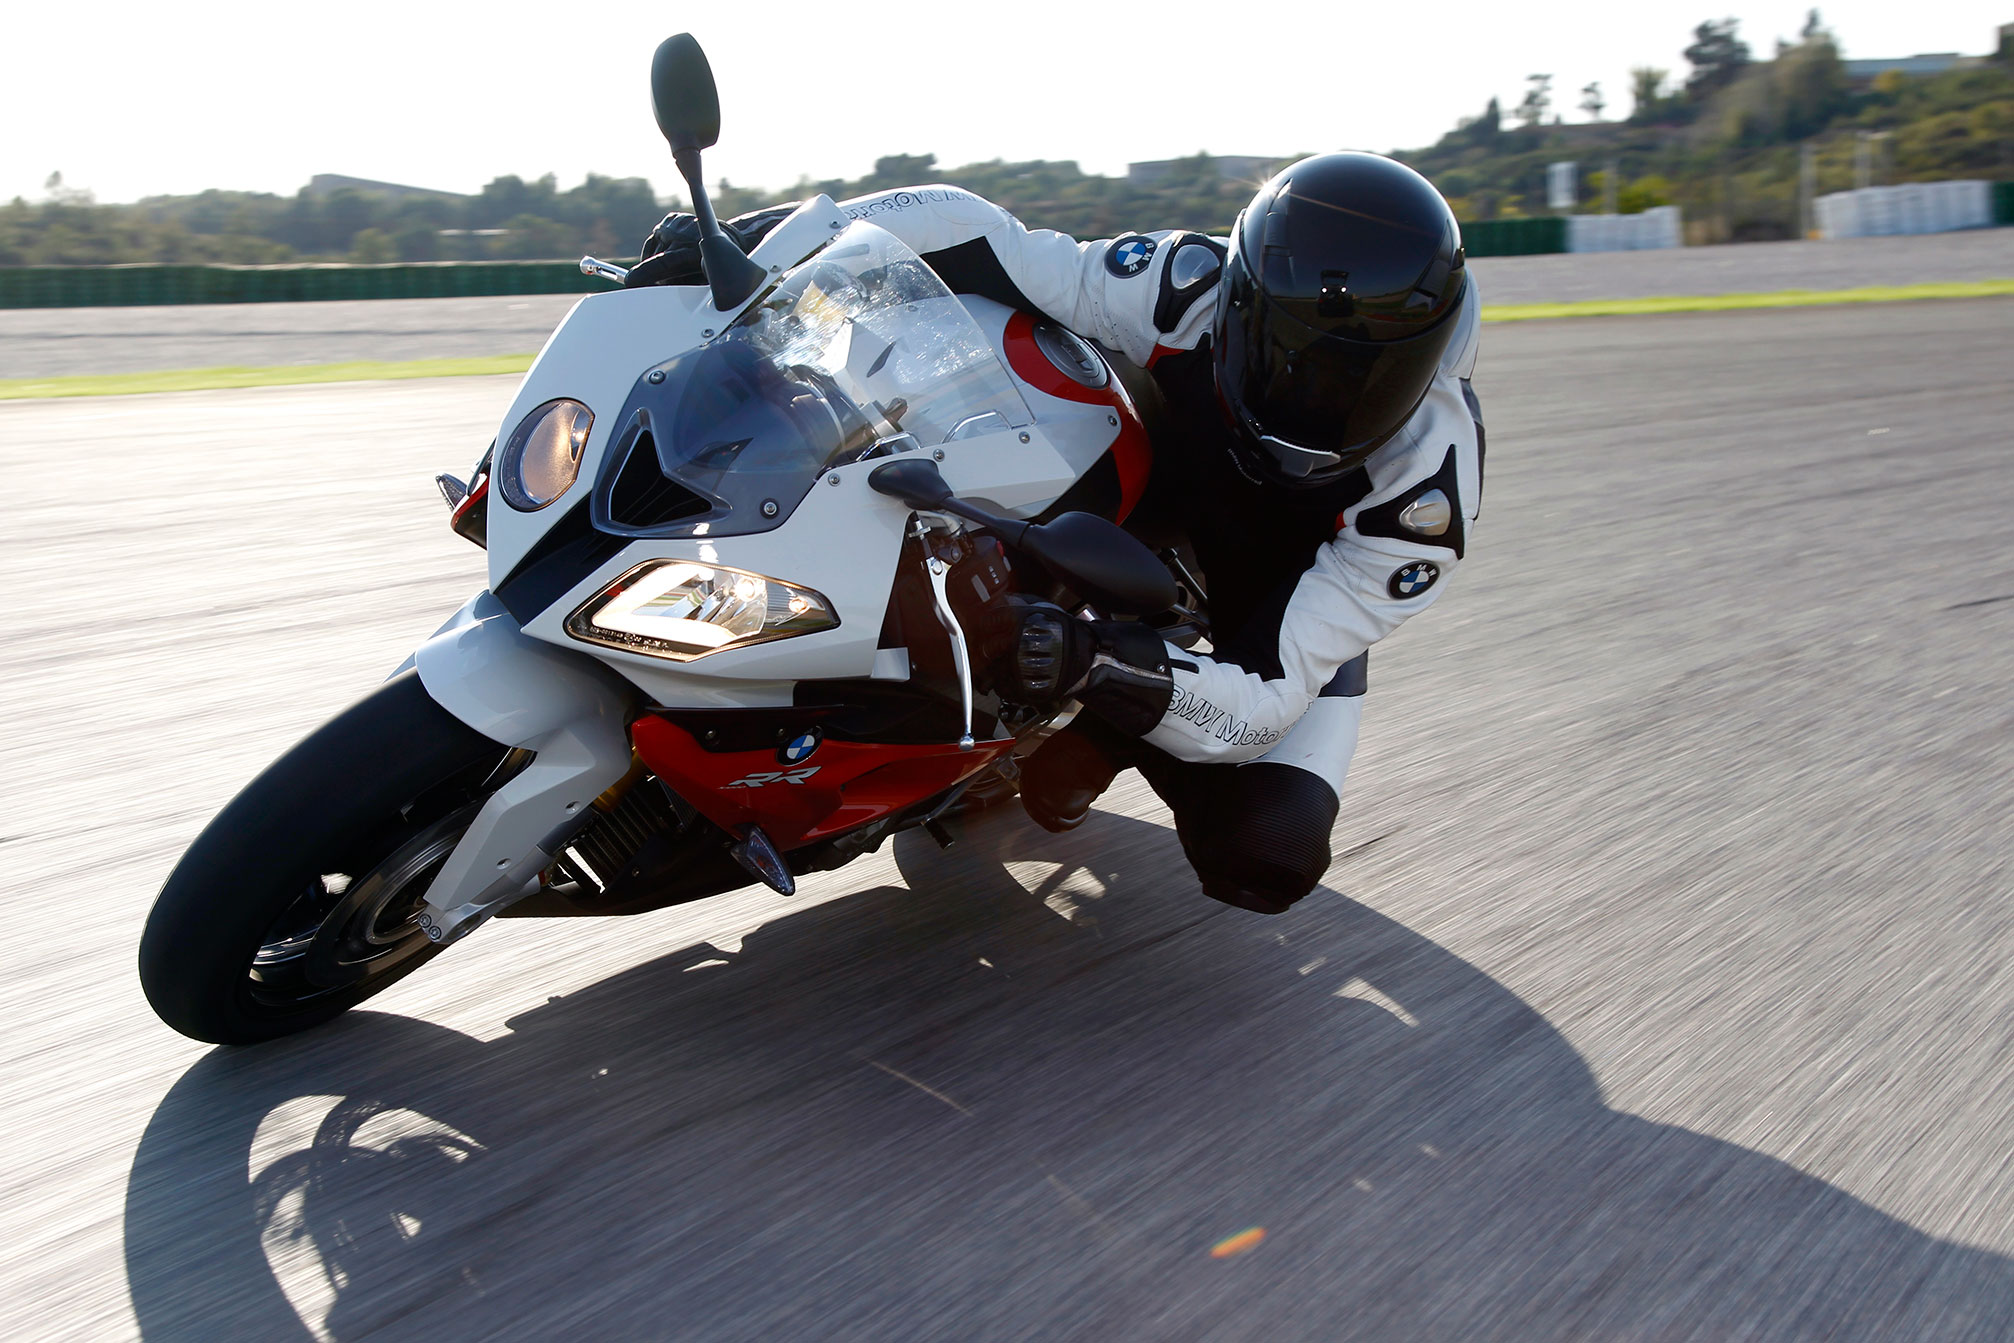 BMW S 1000 RR ABS images #8984